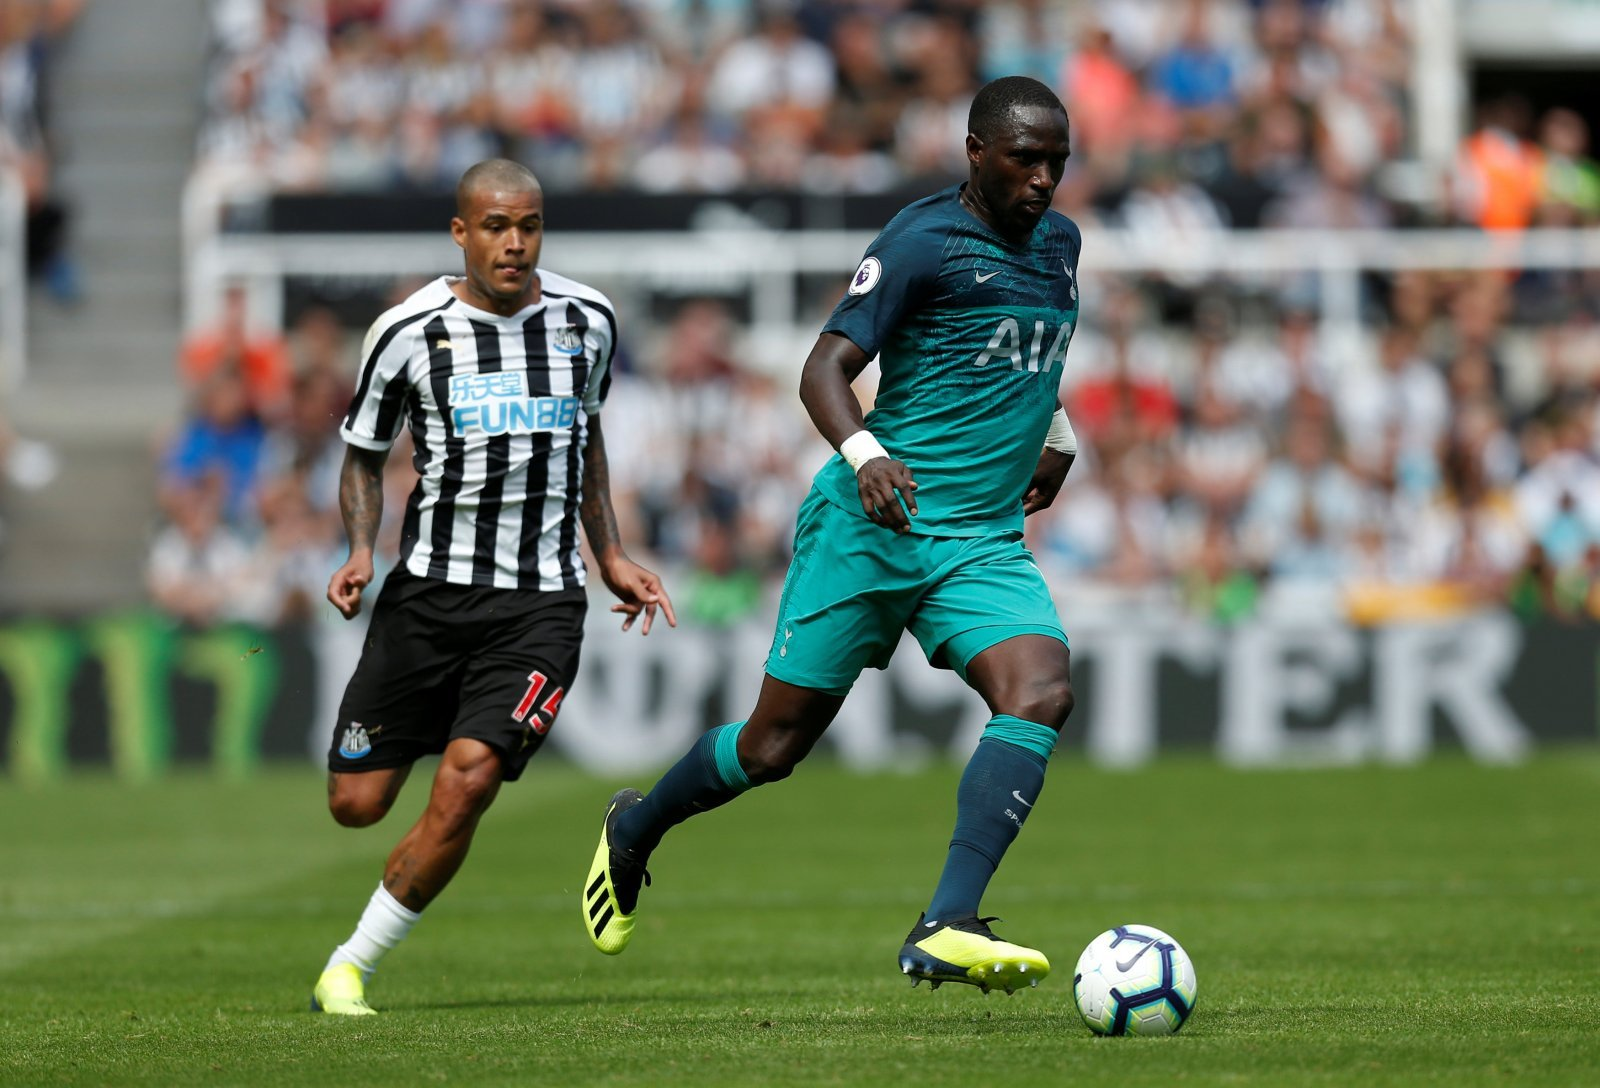 Tottenham fans want to see Moussa Sissoko depart the club